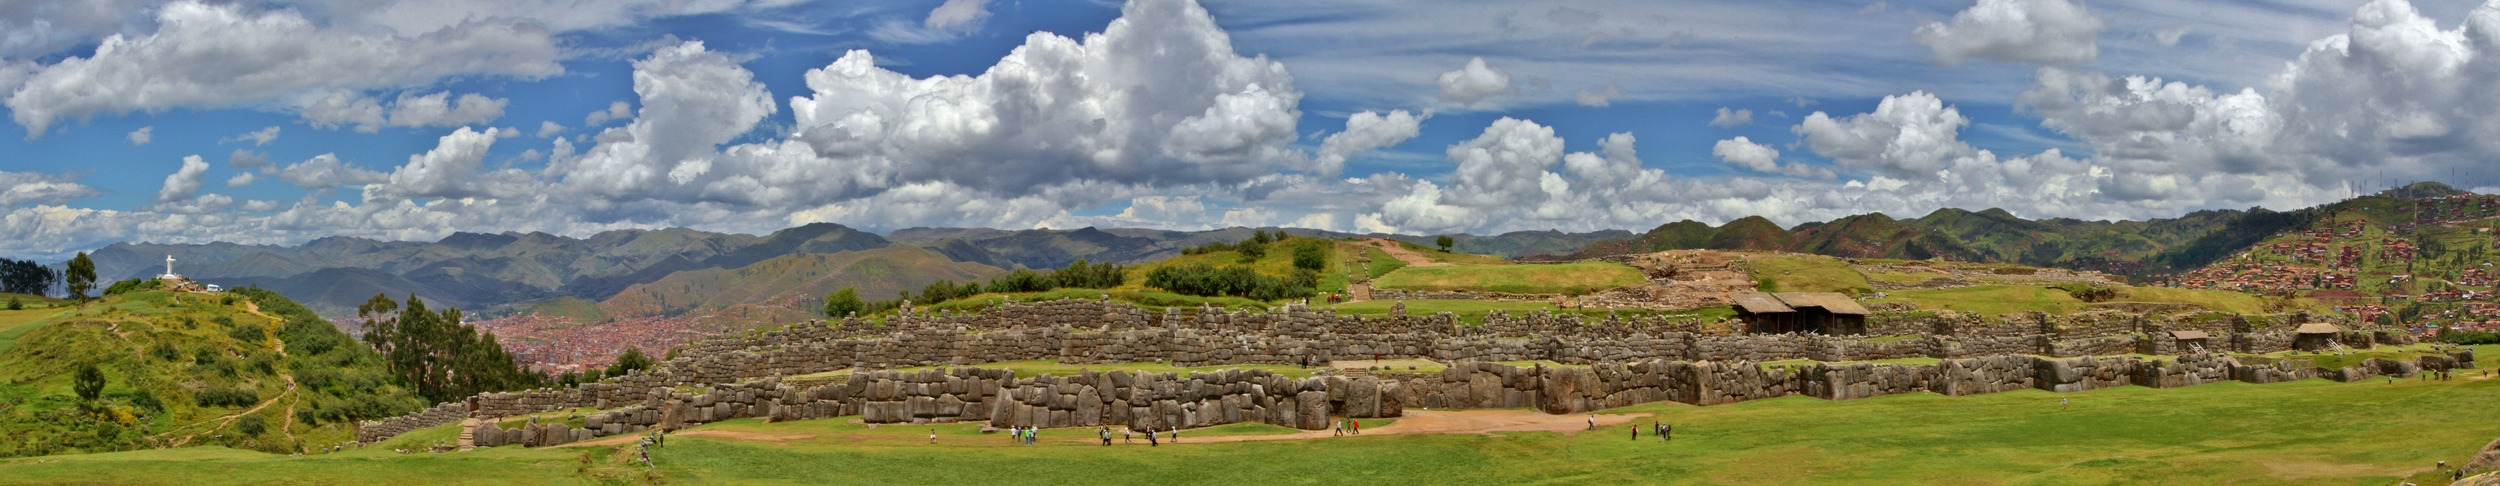 Saksaywaman, with downtown Cusco below and Cristo Blanco on the next hill over.  Click for full-size image